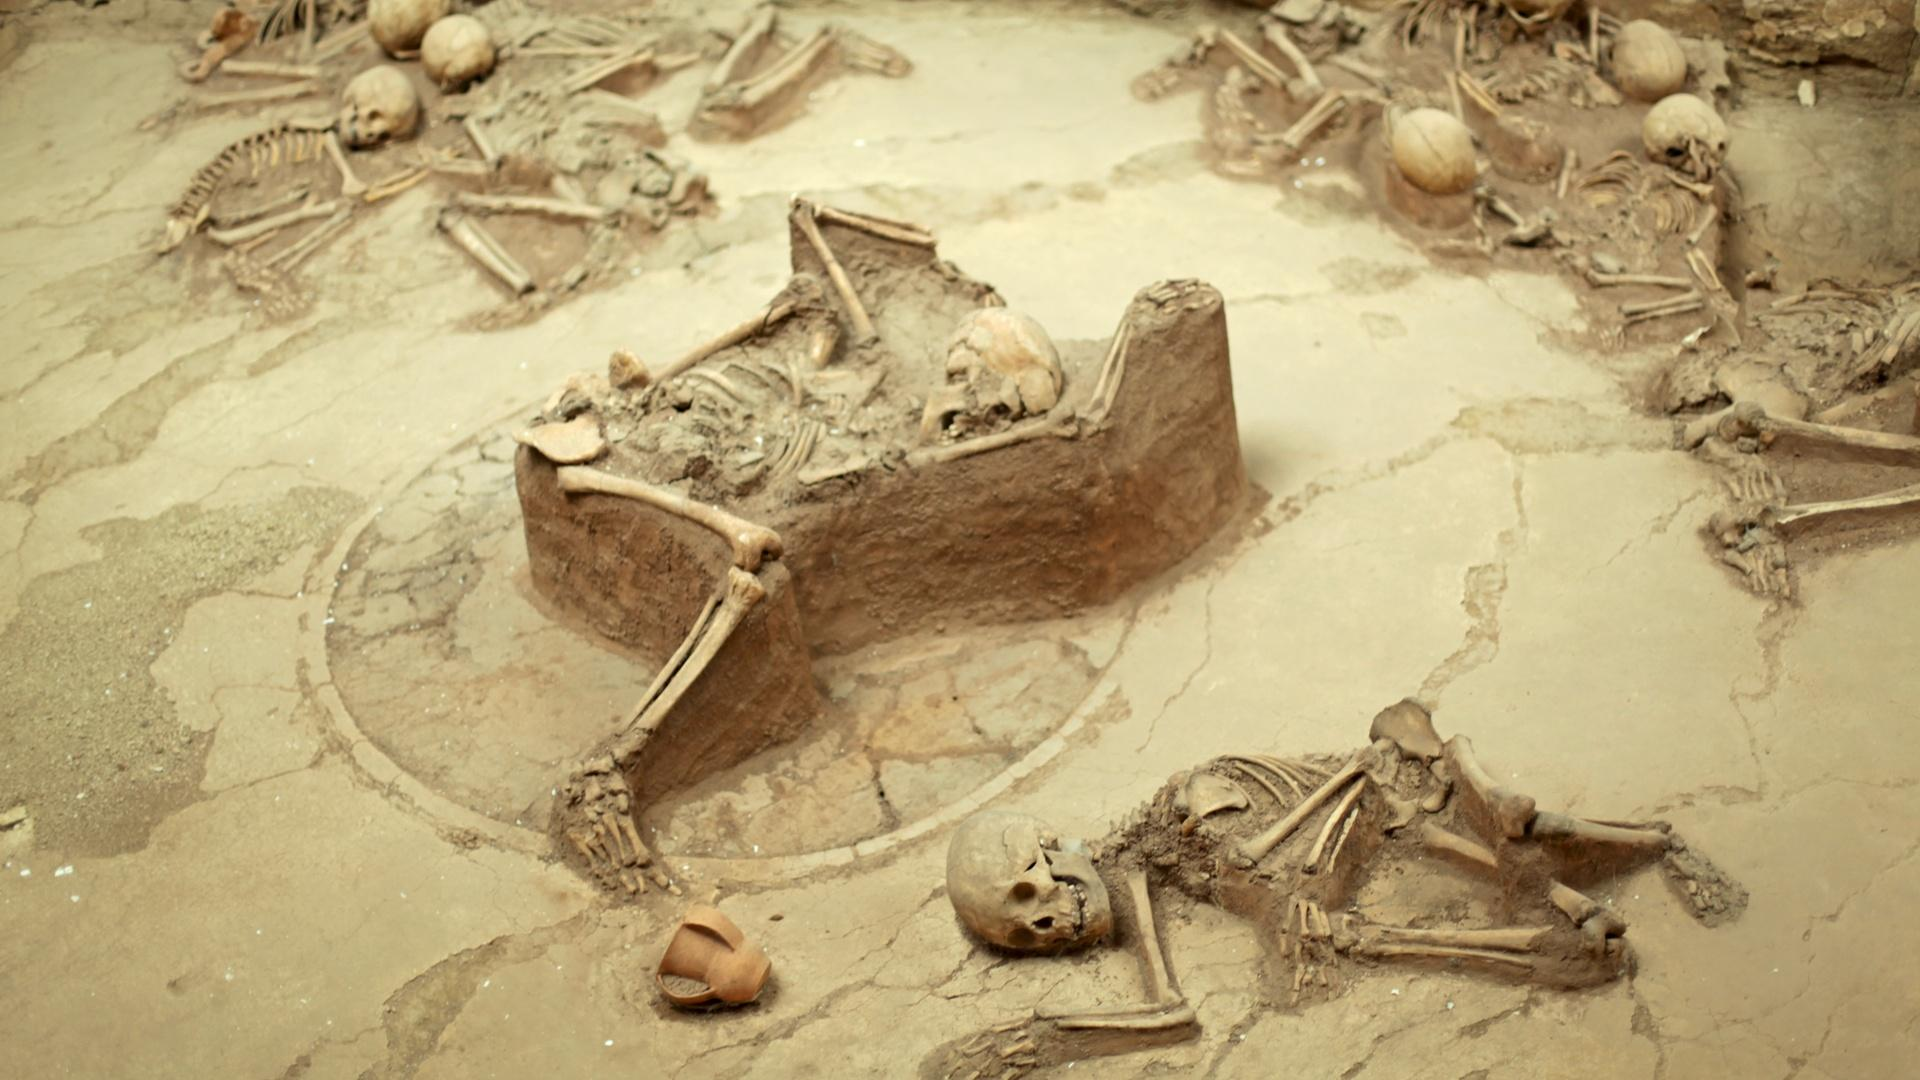 At an archeological site, Lajia, in Qinghai Province, 4,000 year-old skeletons, mainly children, are perfectly preserved in thick layers of mud.